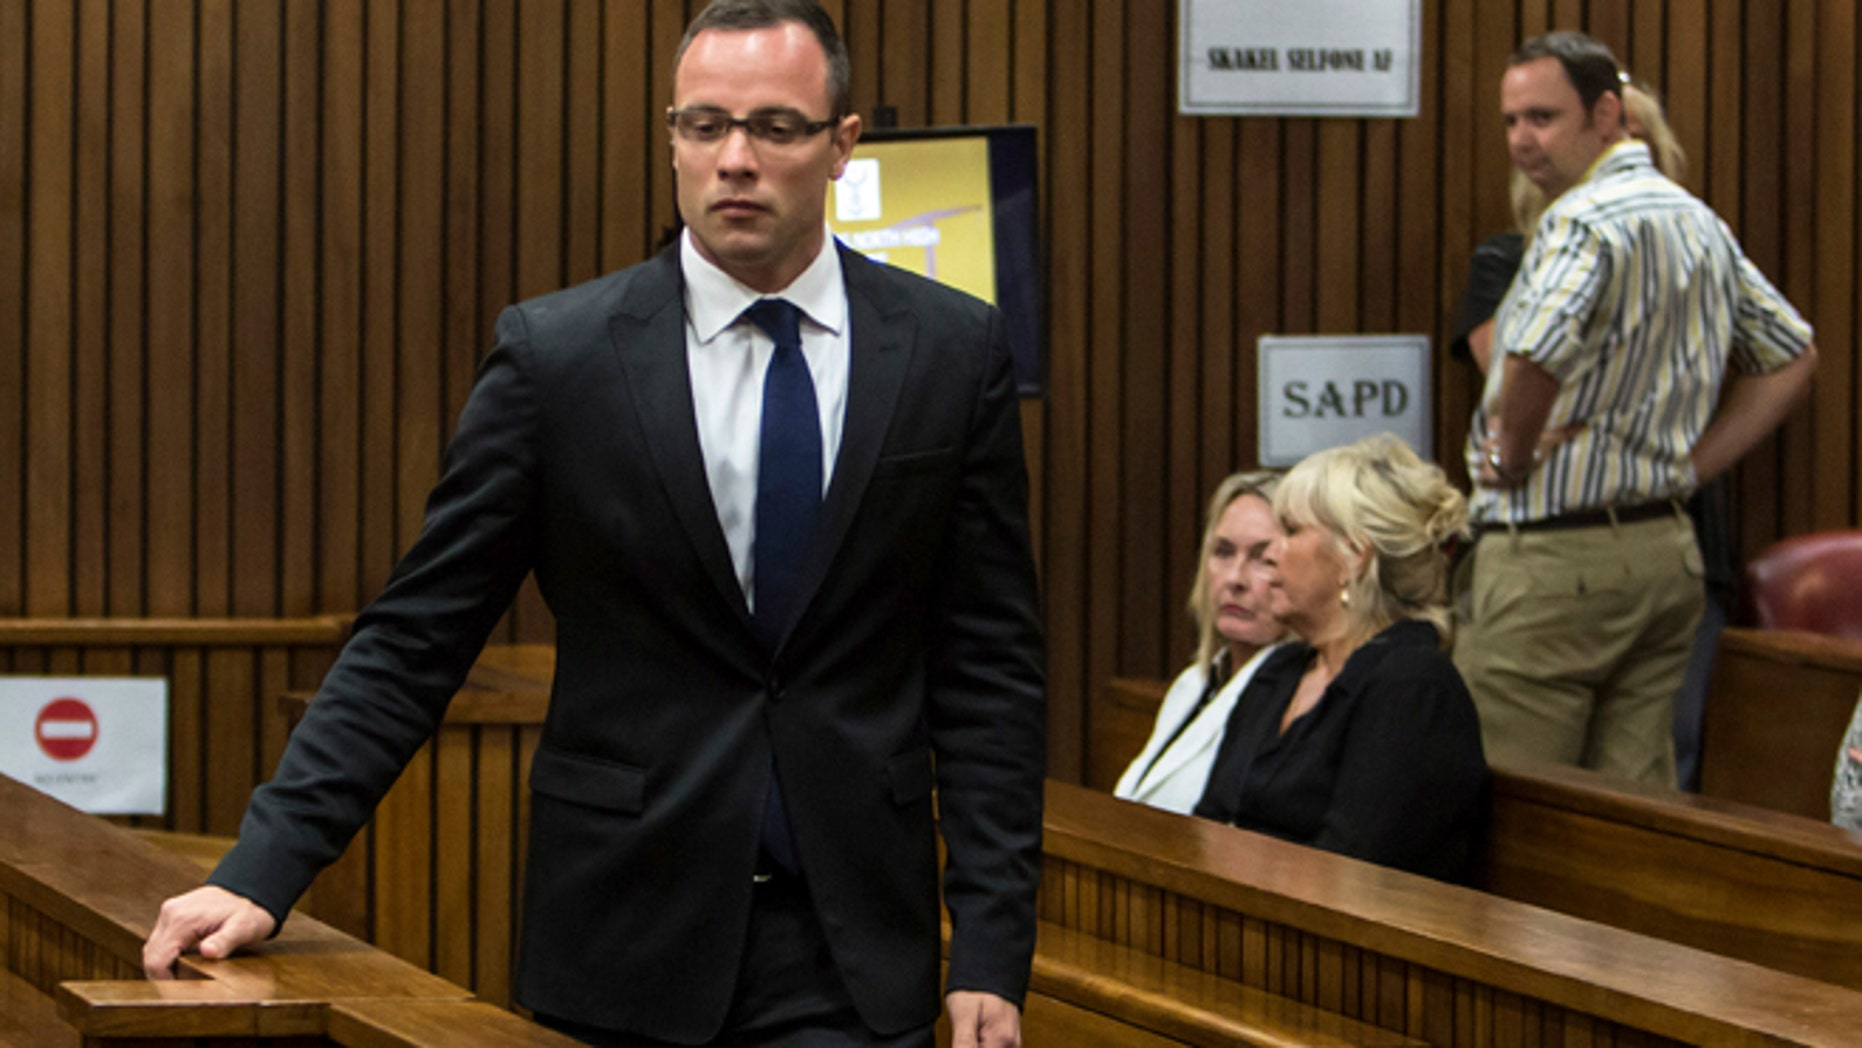 March 17, 2014: Oscar Pistorius, left, walks past June Steenkamp, back left, mother of Reeva Steenkamp, and Jenny Strydom, as he arrives in court in Pretoria, South Africa.